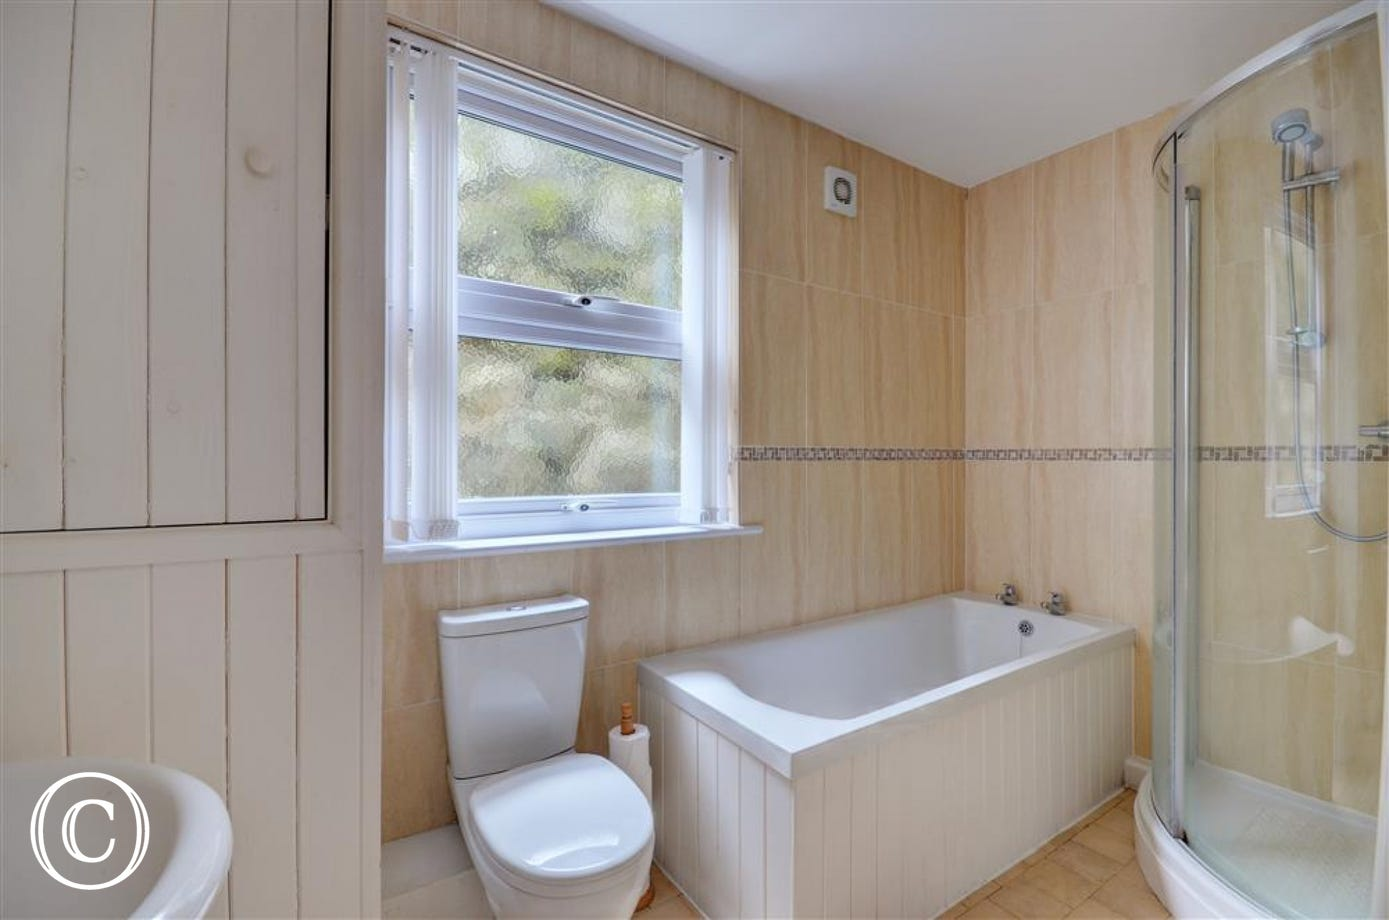 Bathroom with bath & seperate shower cubicle